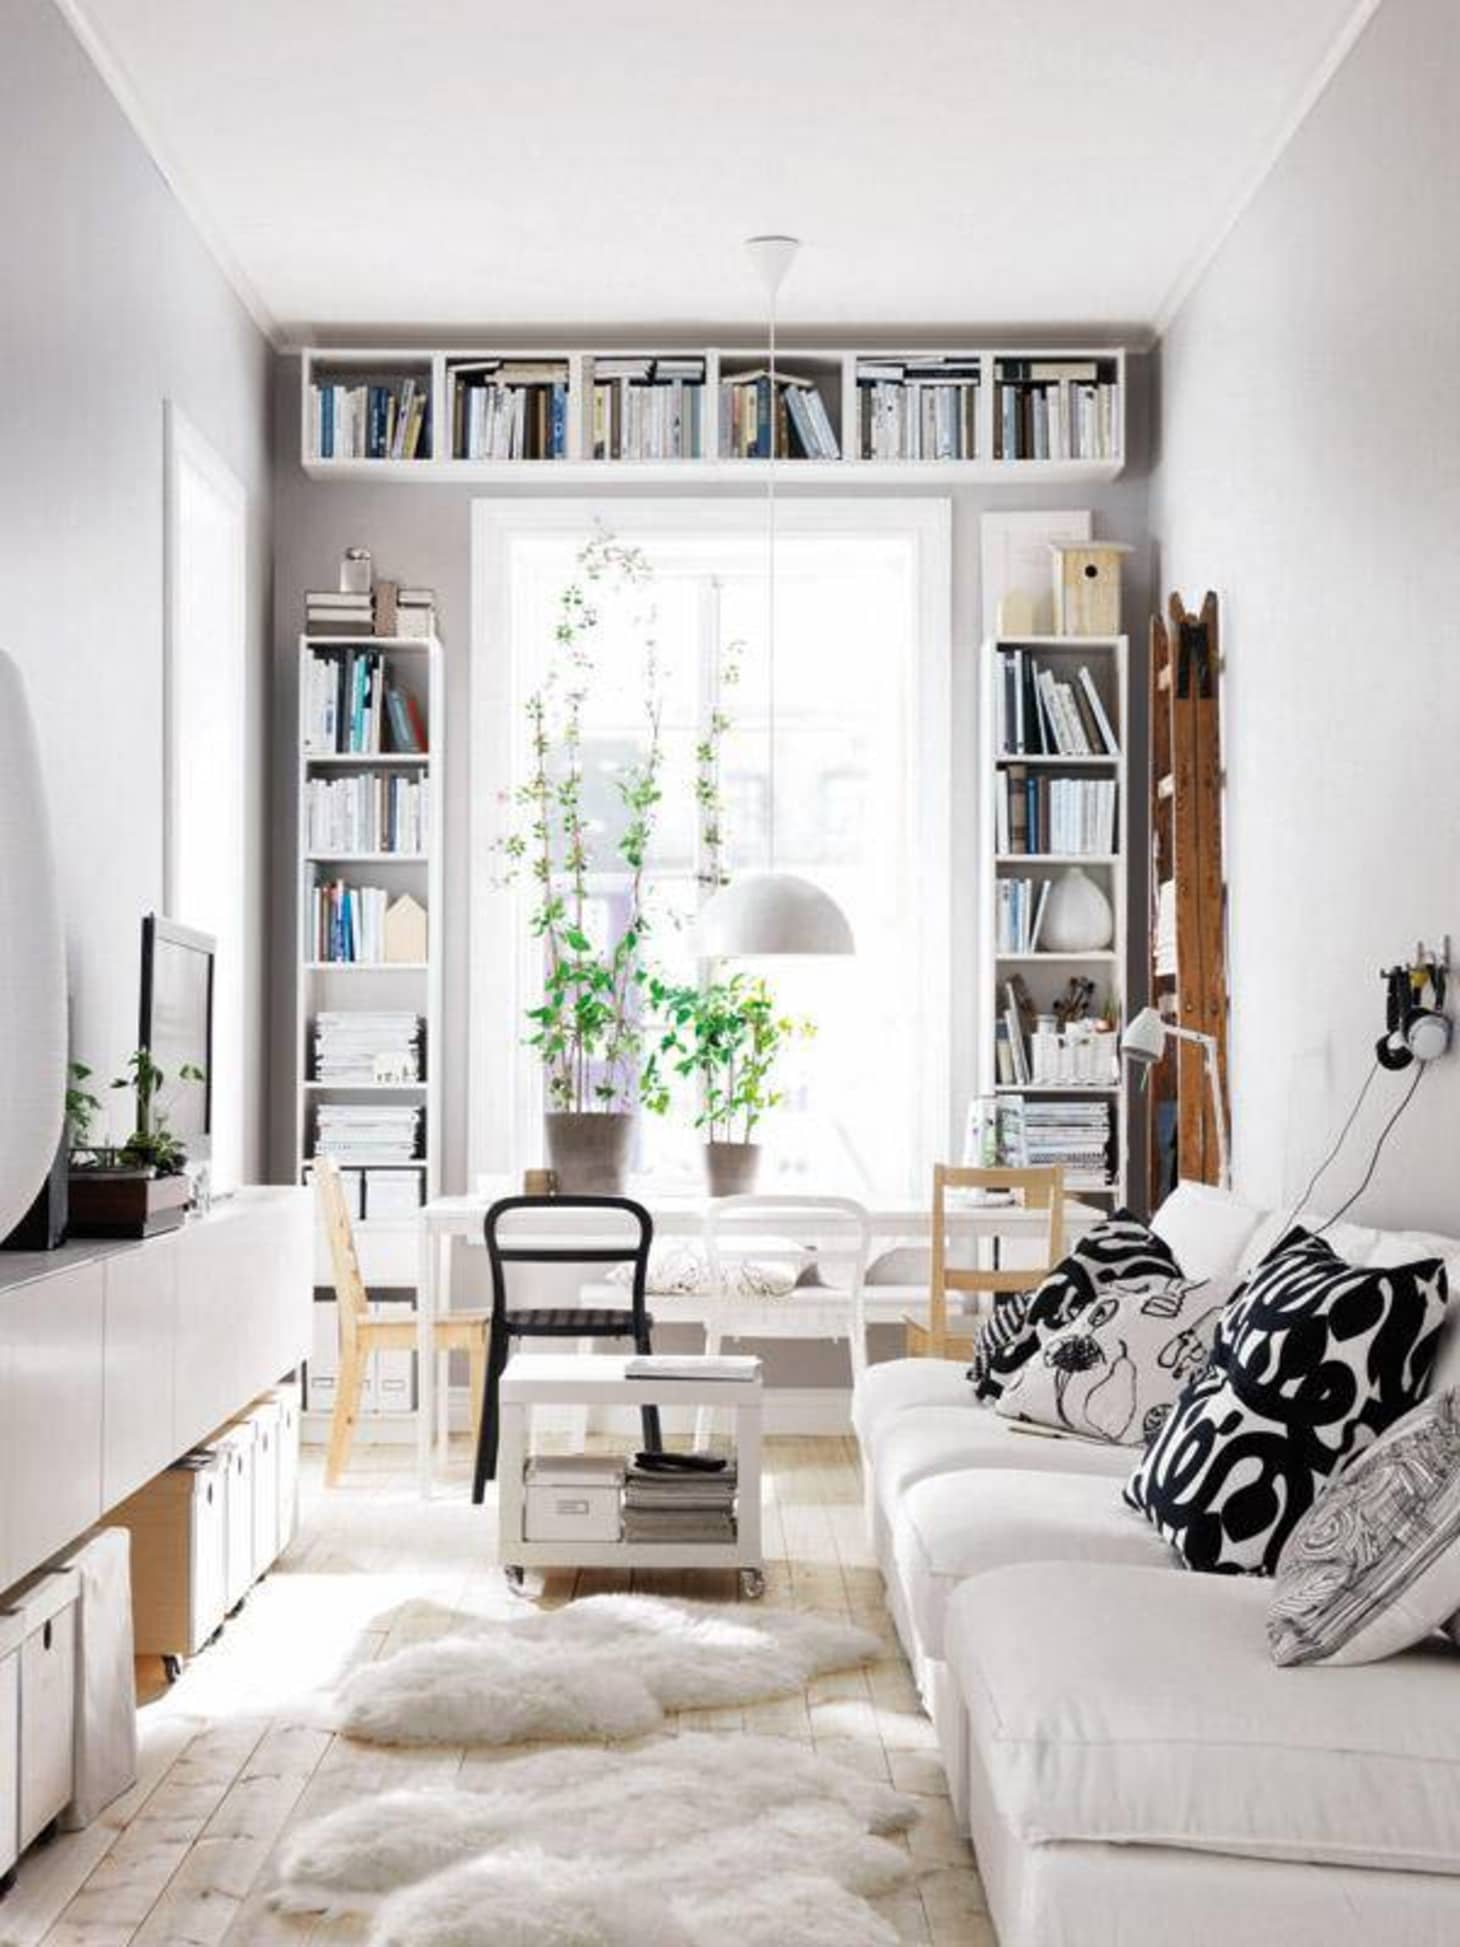 Room Design: 30 Small Living Room Decorating & Design Ideas